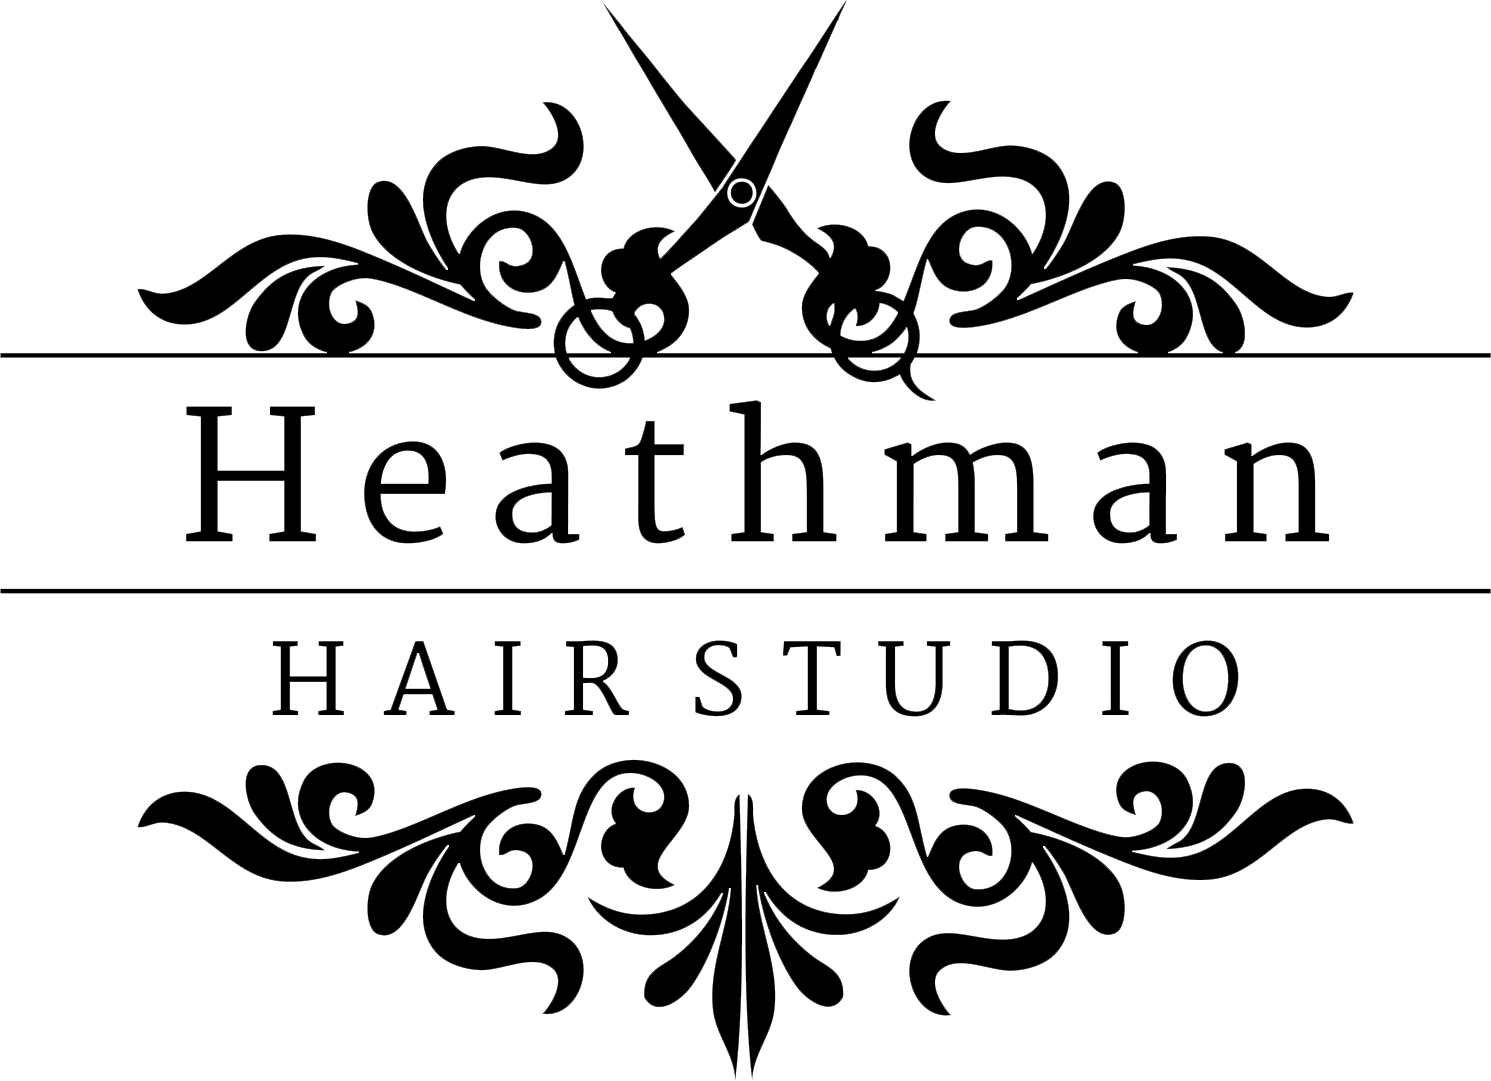 Heathman Hair Studio